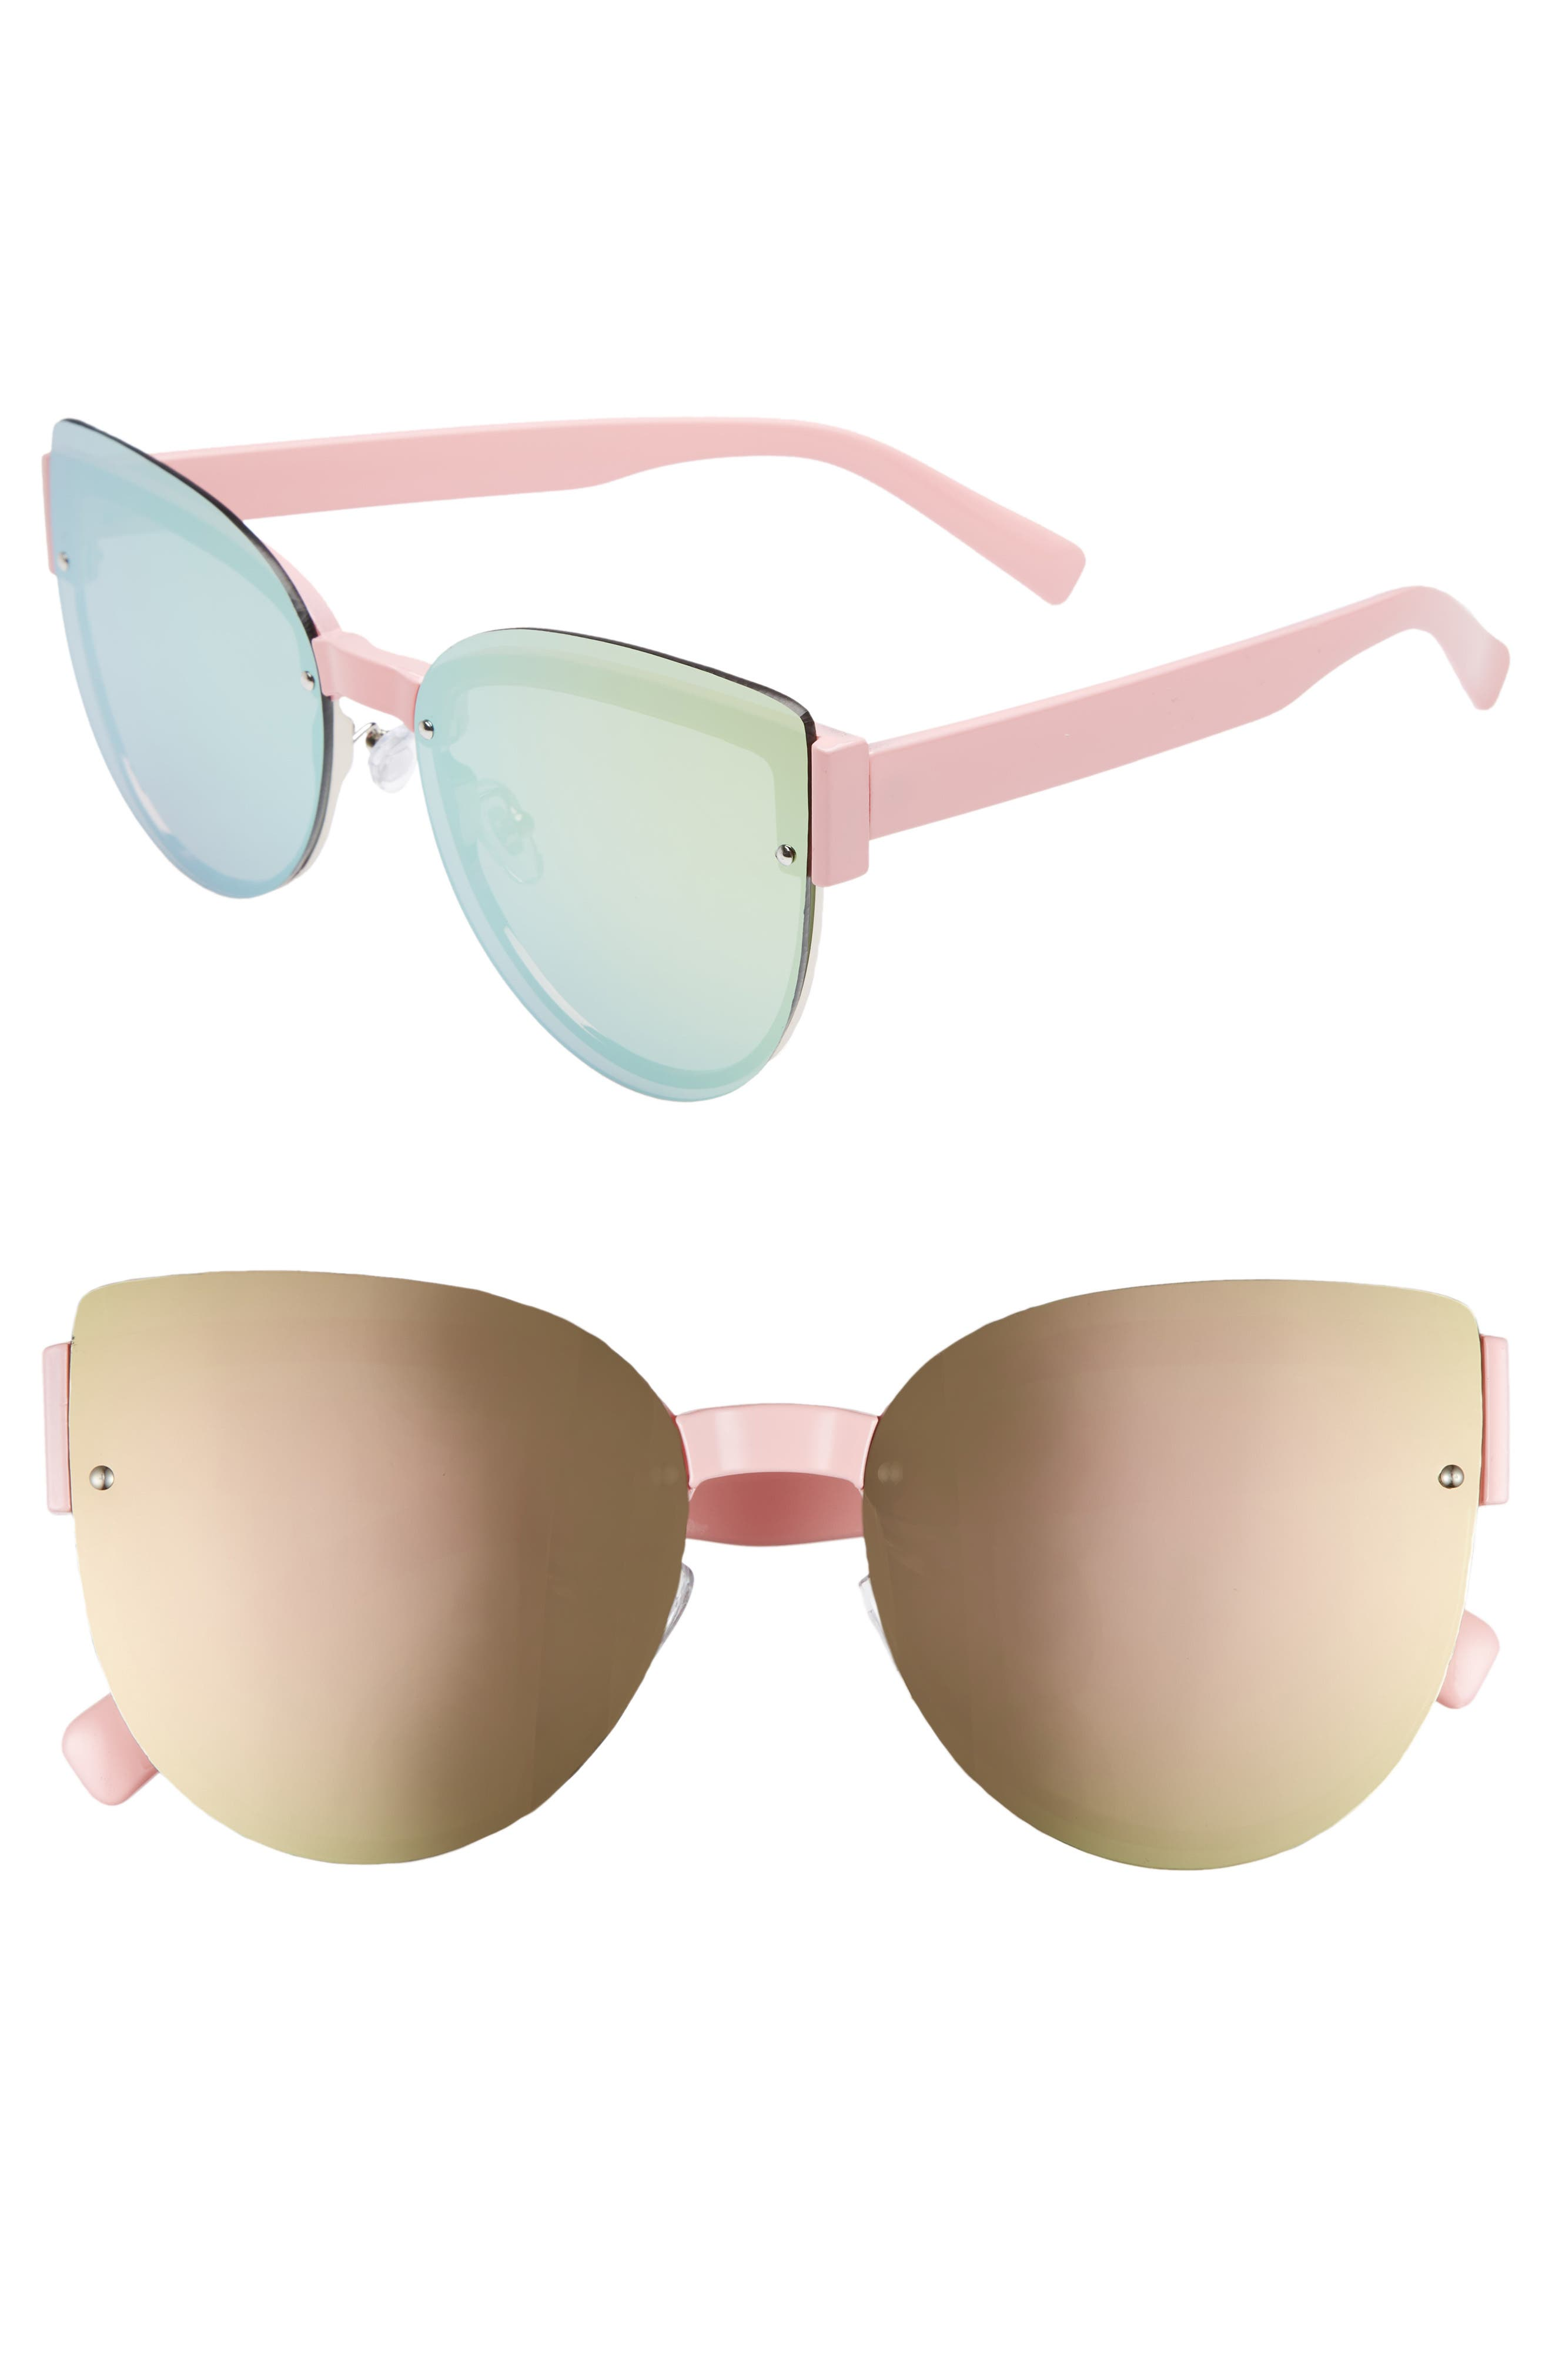 62mm Oversize Rimless Cat Eye Sunglasses,                         Main,                         color, Pink